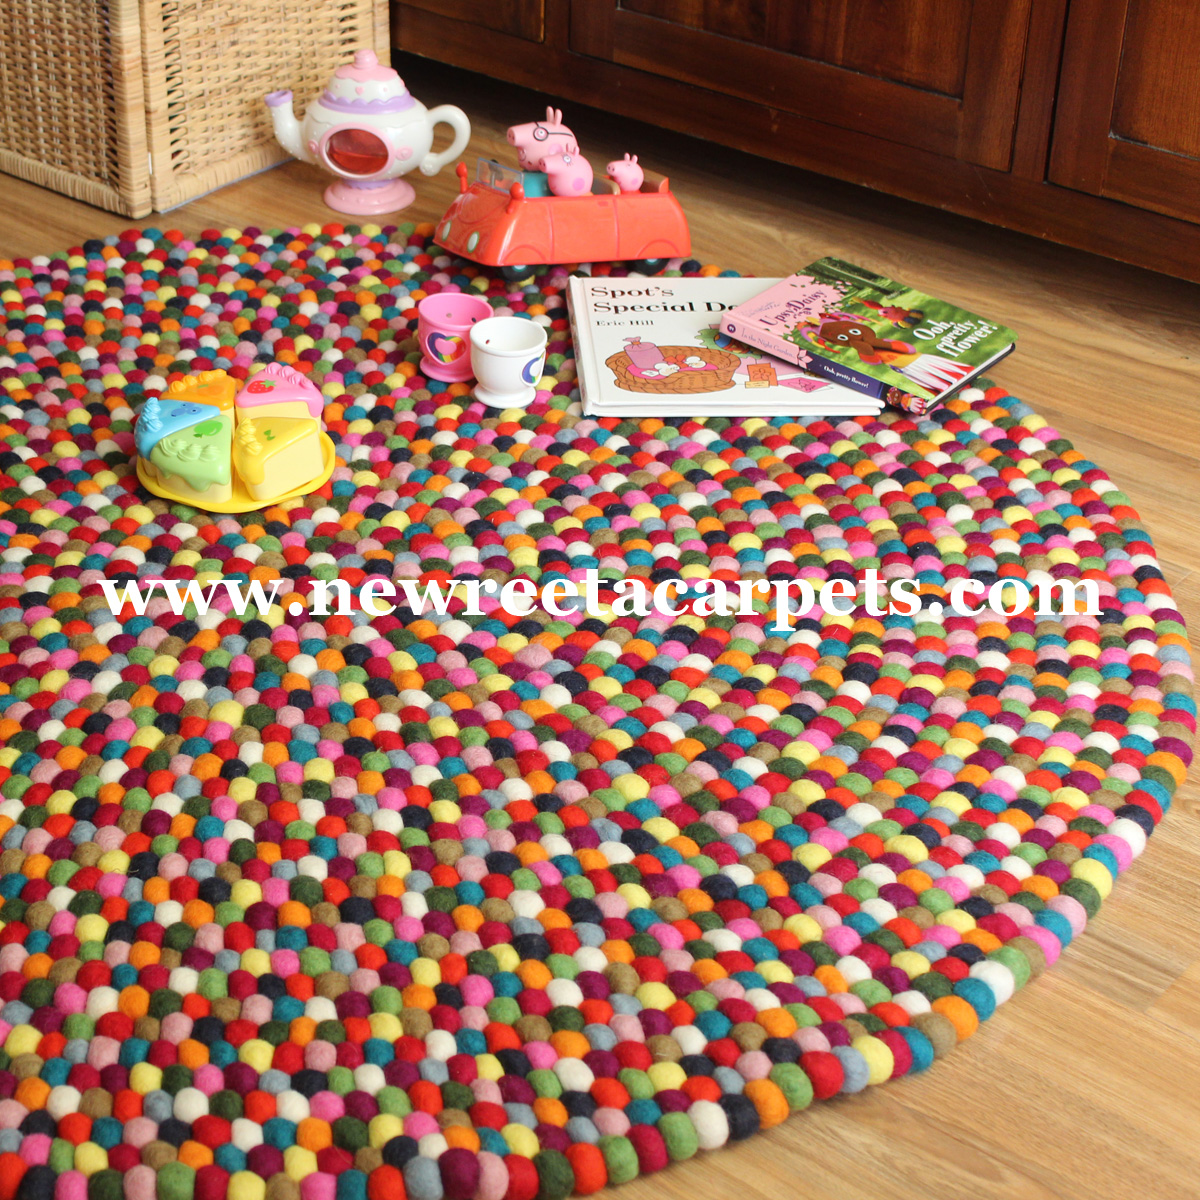 multi color felt ball rug - new reeta carpets nepal